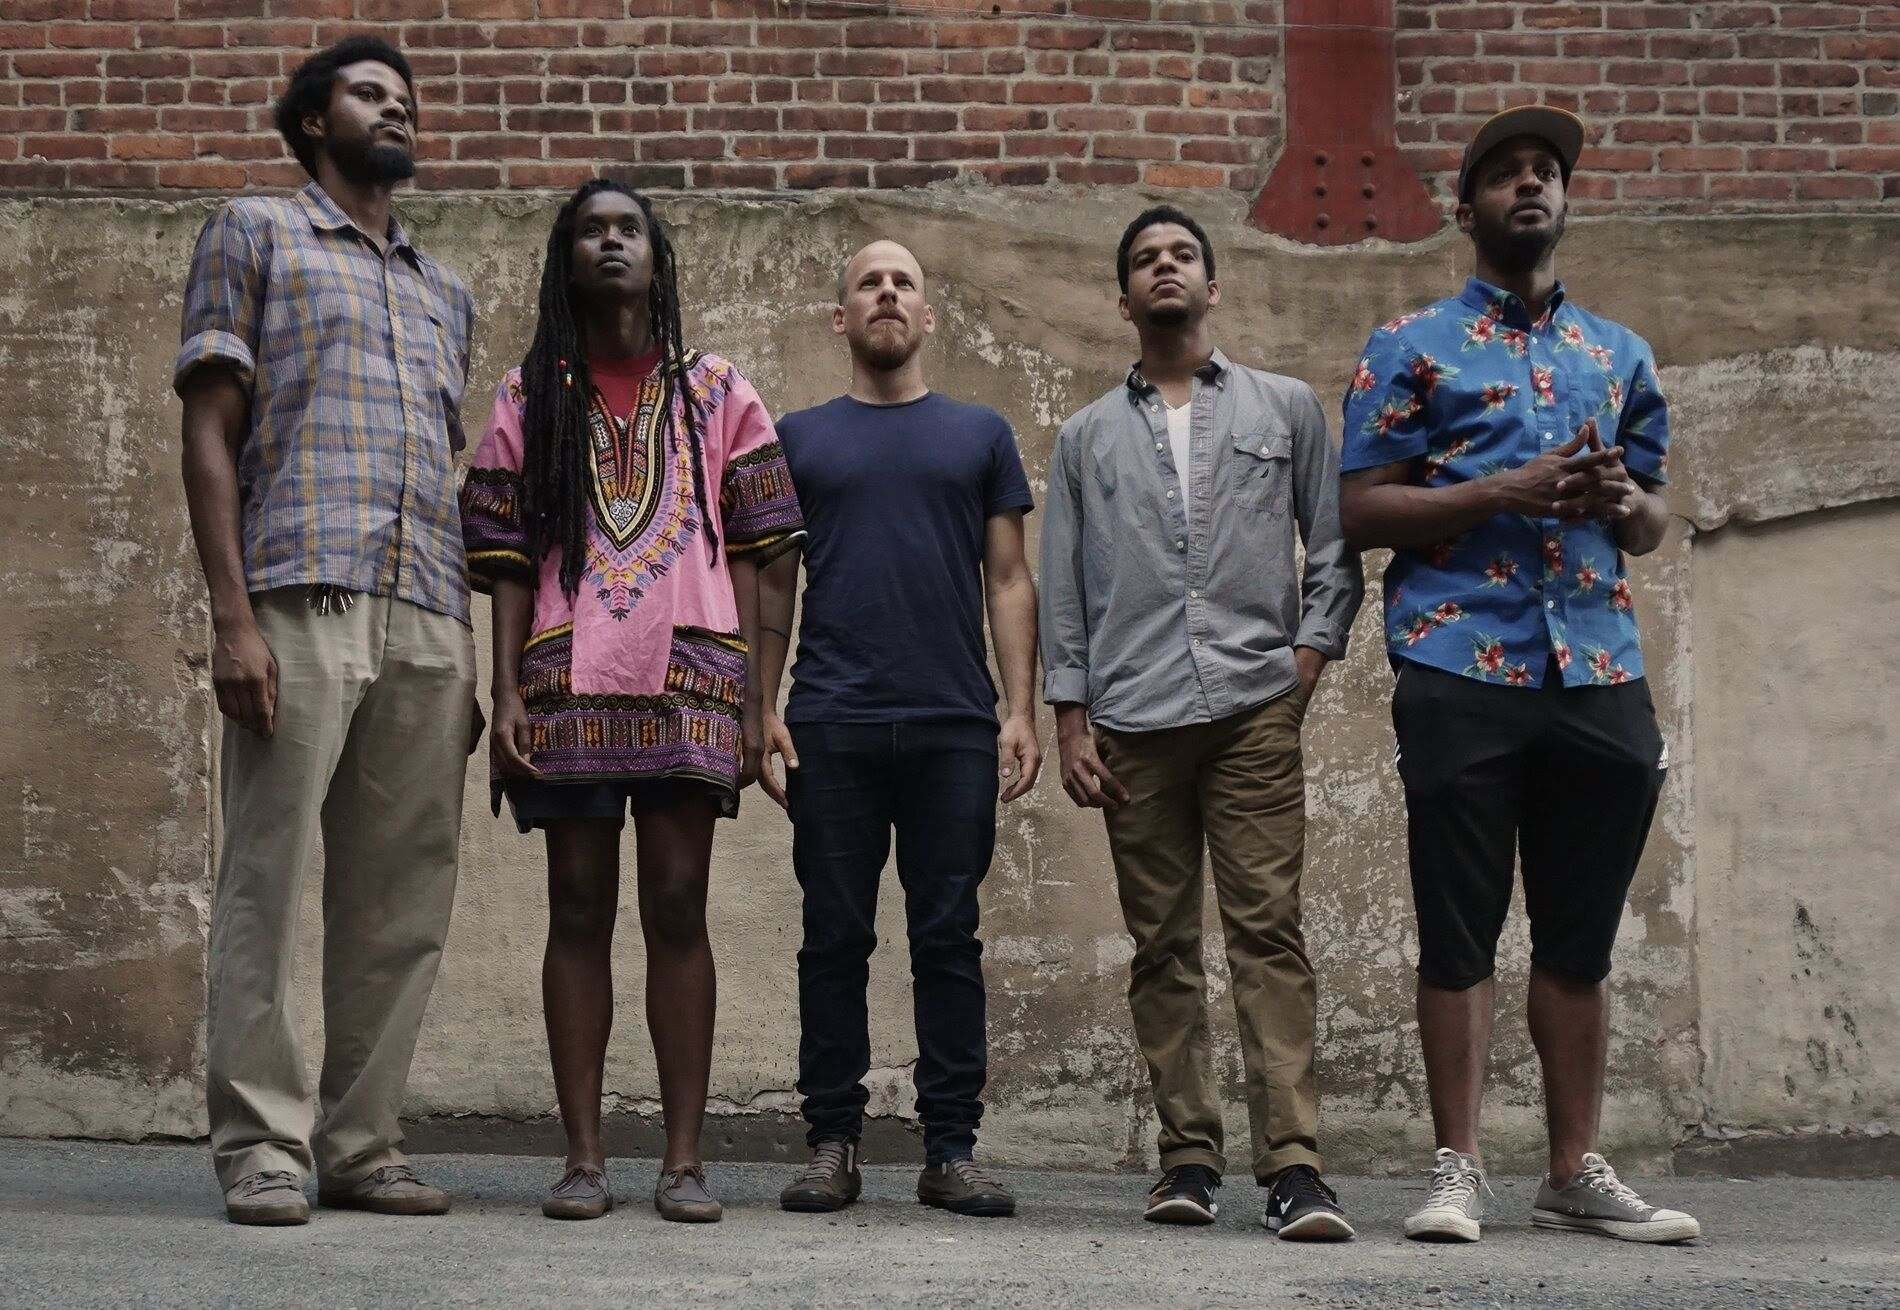 Irreversible Entanglements will play on Saturday, June 29 at 9:30pm at The IronWorks.